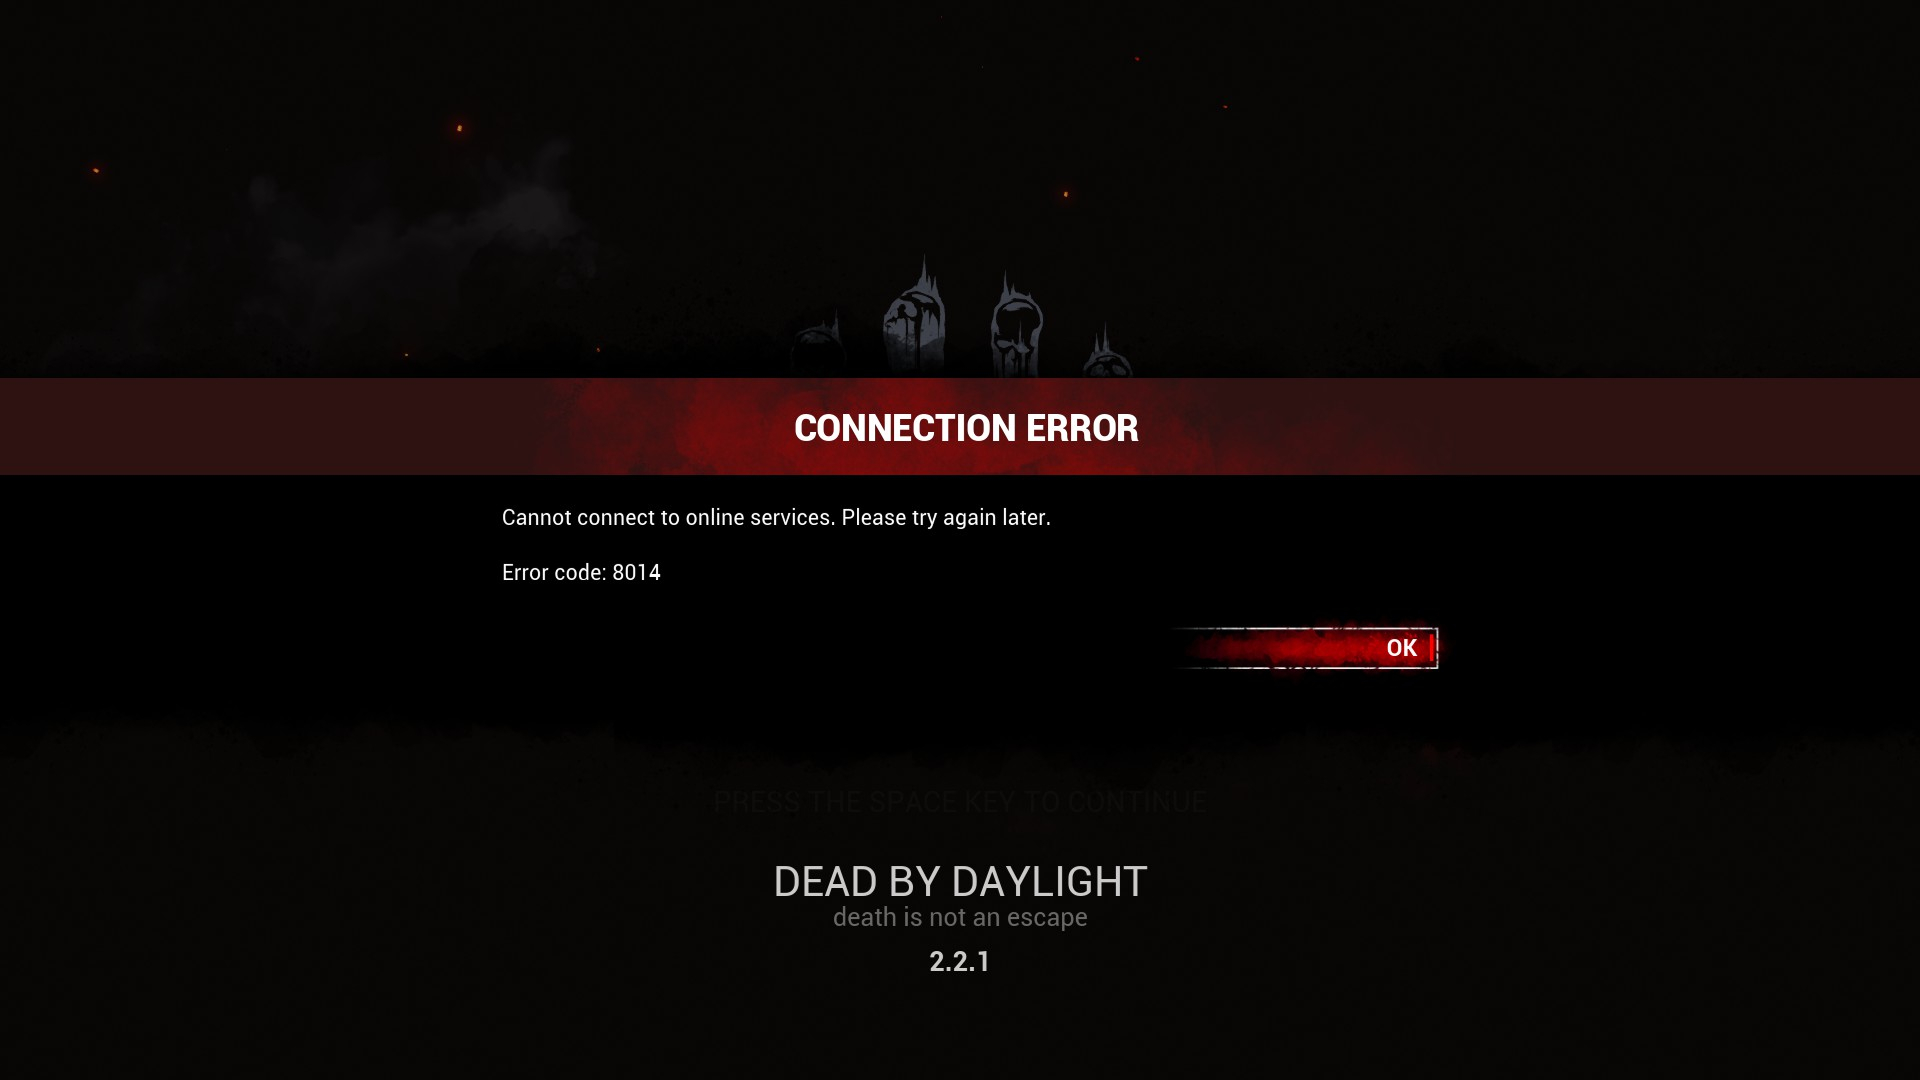 Dead by Daylight Cannot connect to online services: Error code 8014